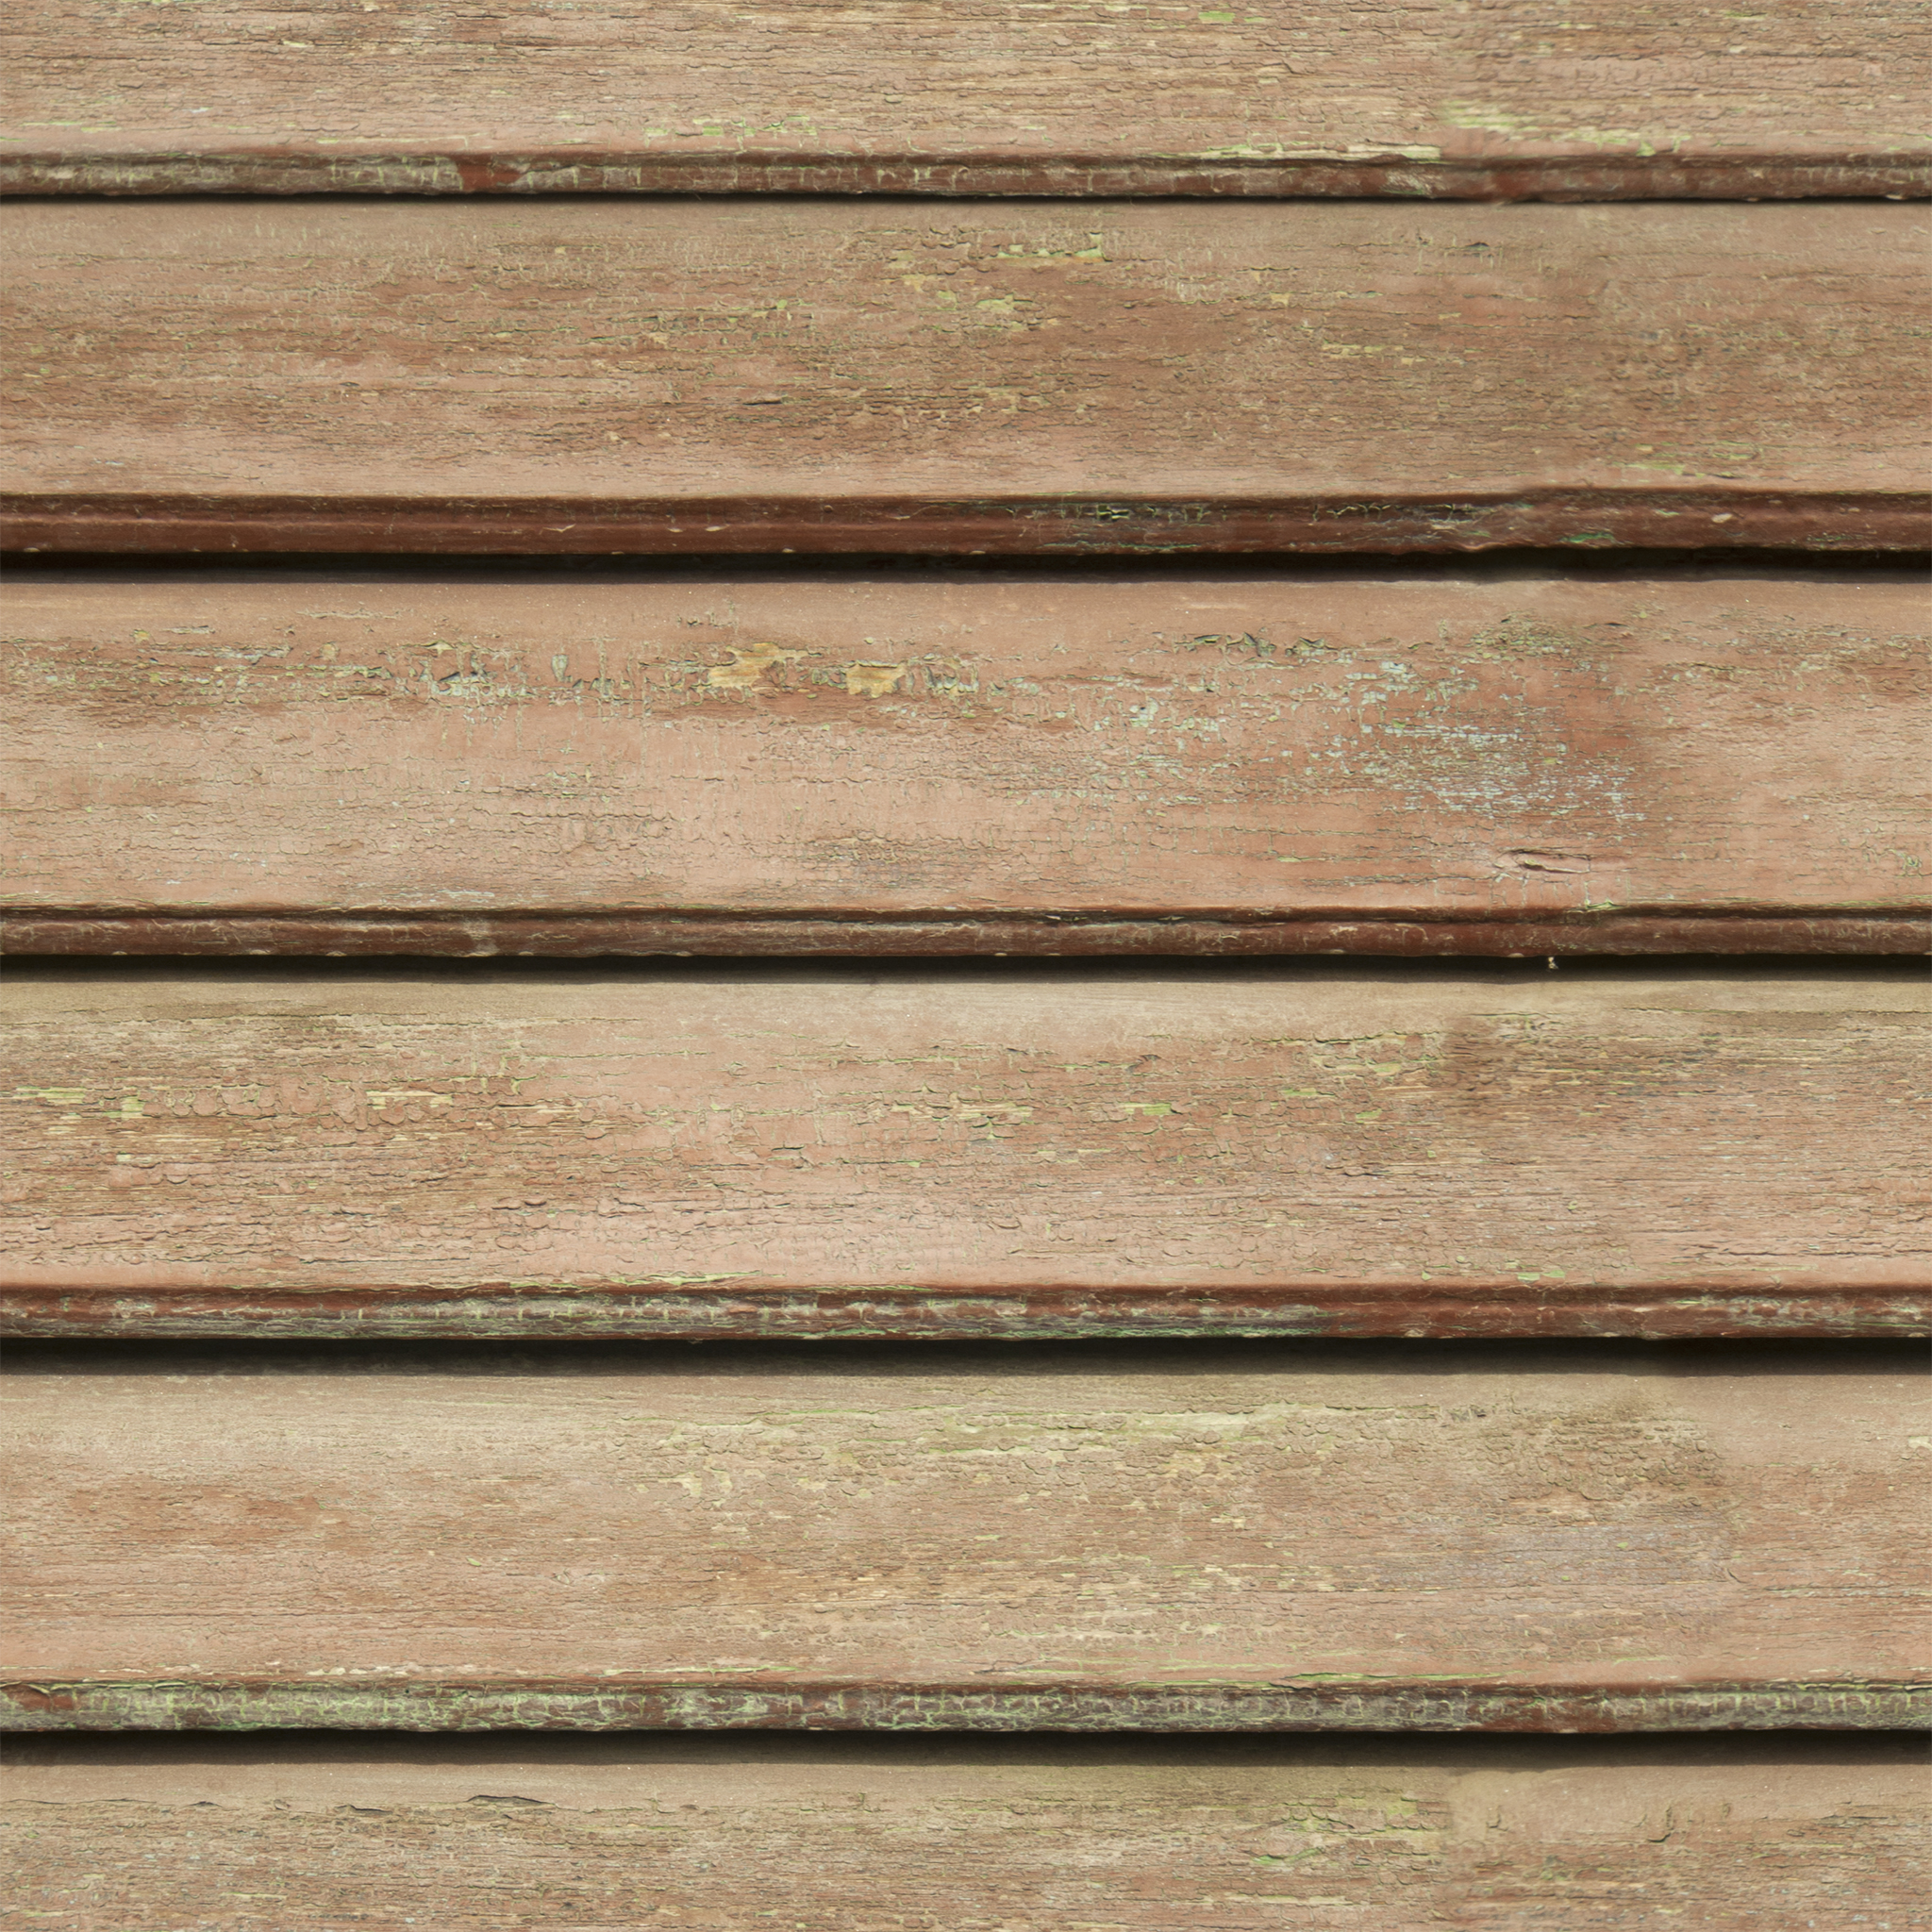 Damaged Wood Siding.jpg